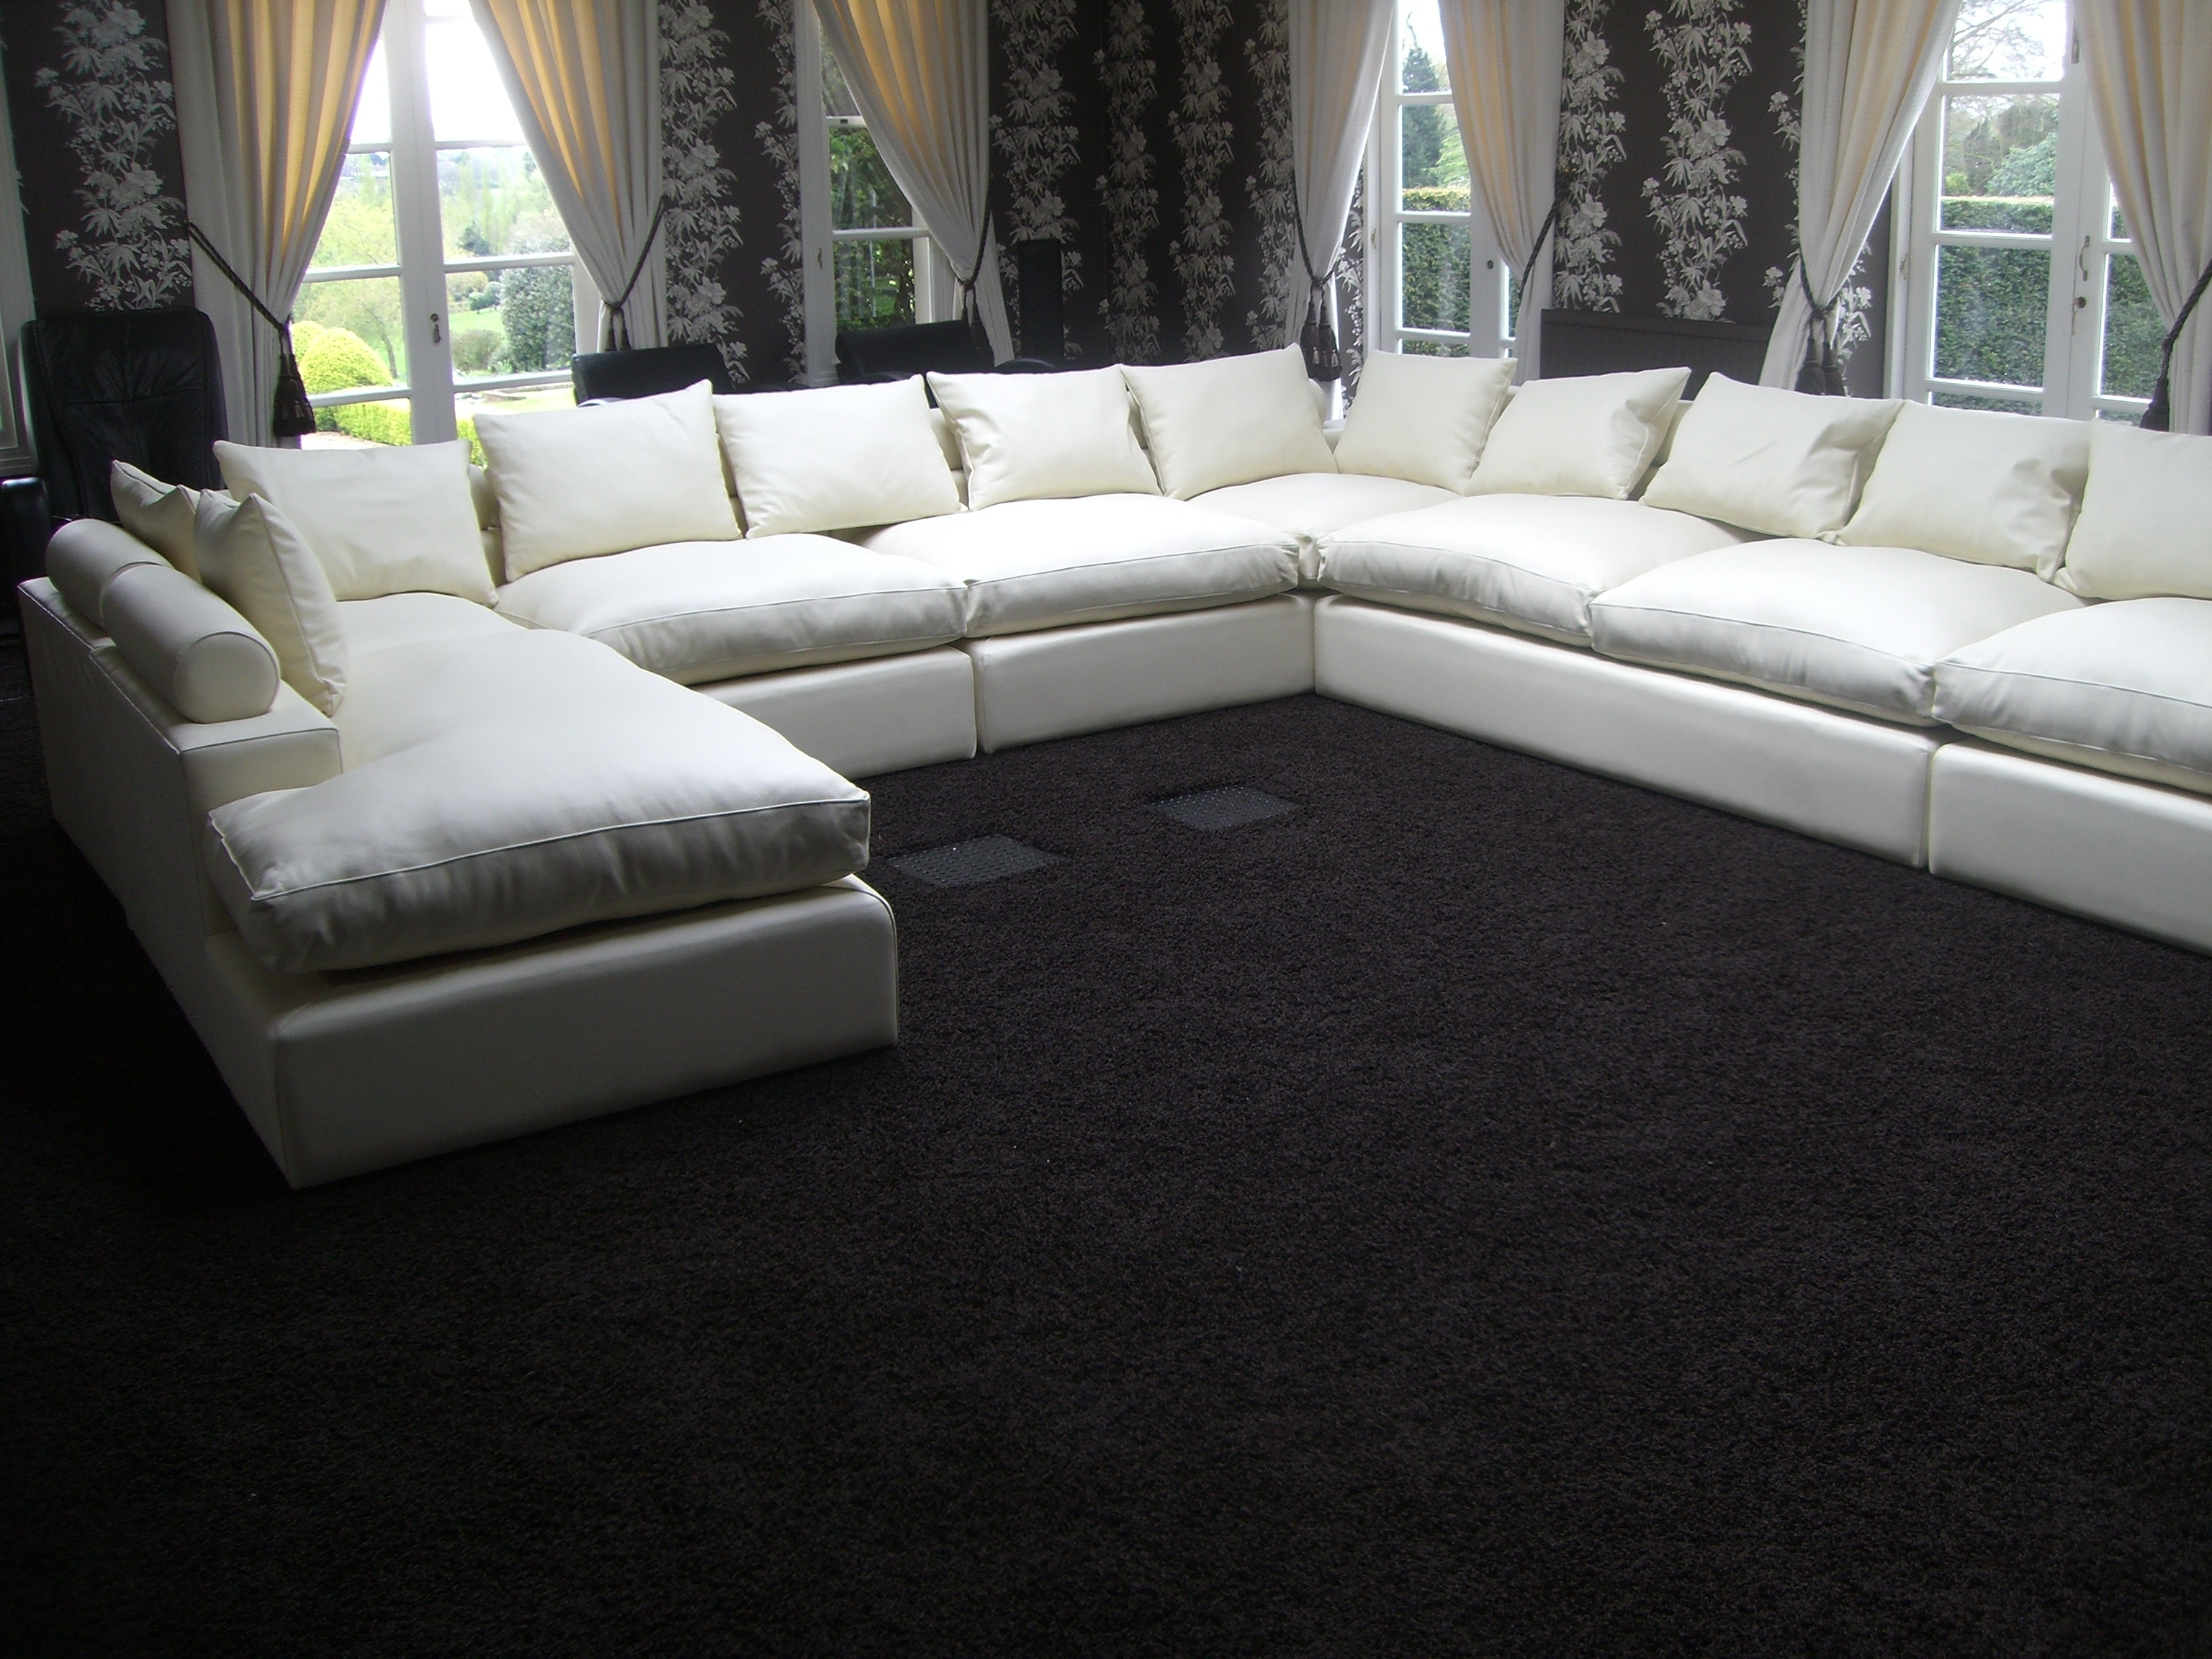 Large U Shaped Sofa – Fjellkjeden With Regard To Most Recent Huge U Shaped Sectionals (View 10 of 15)